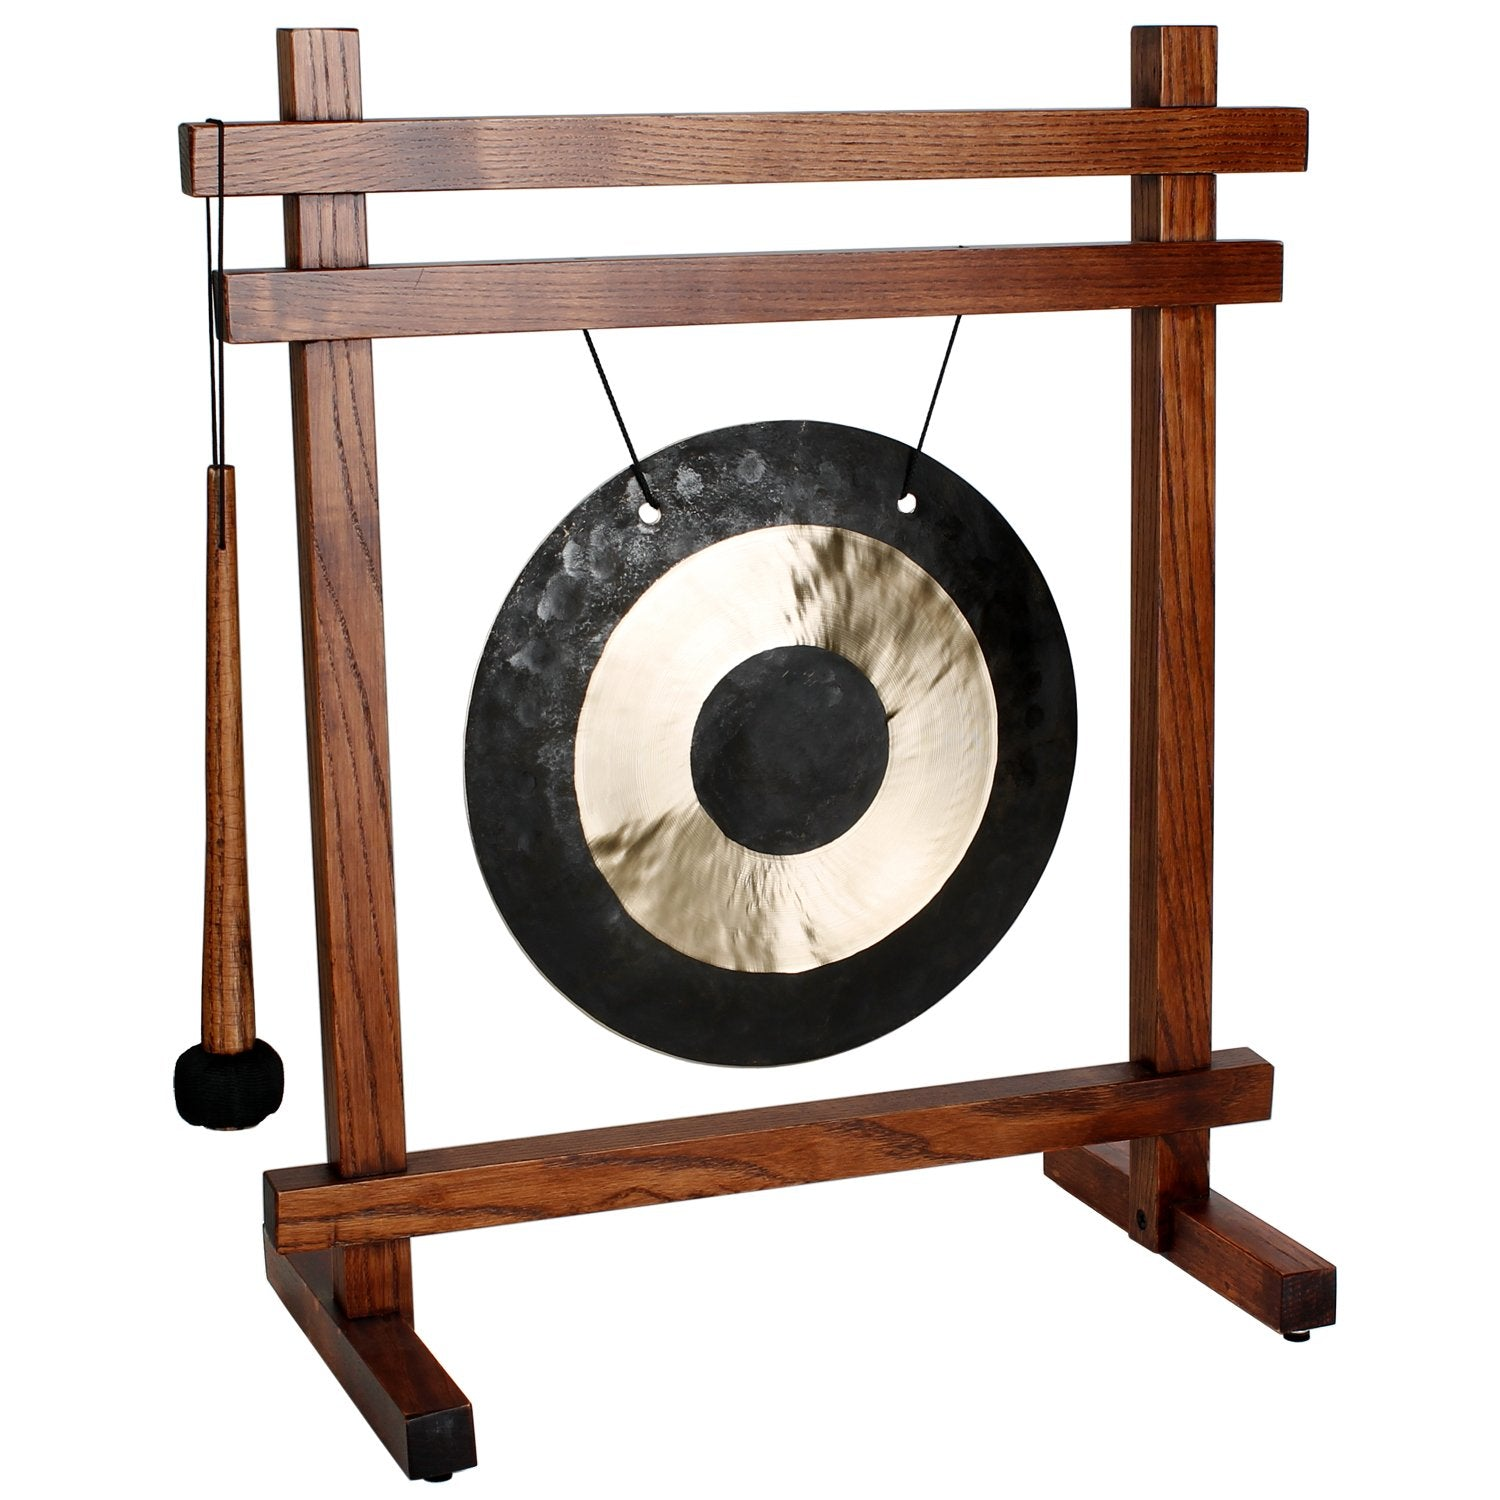 Table Gong full product image